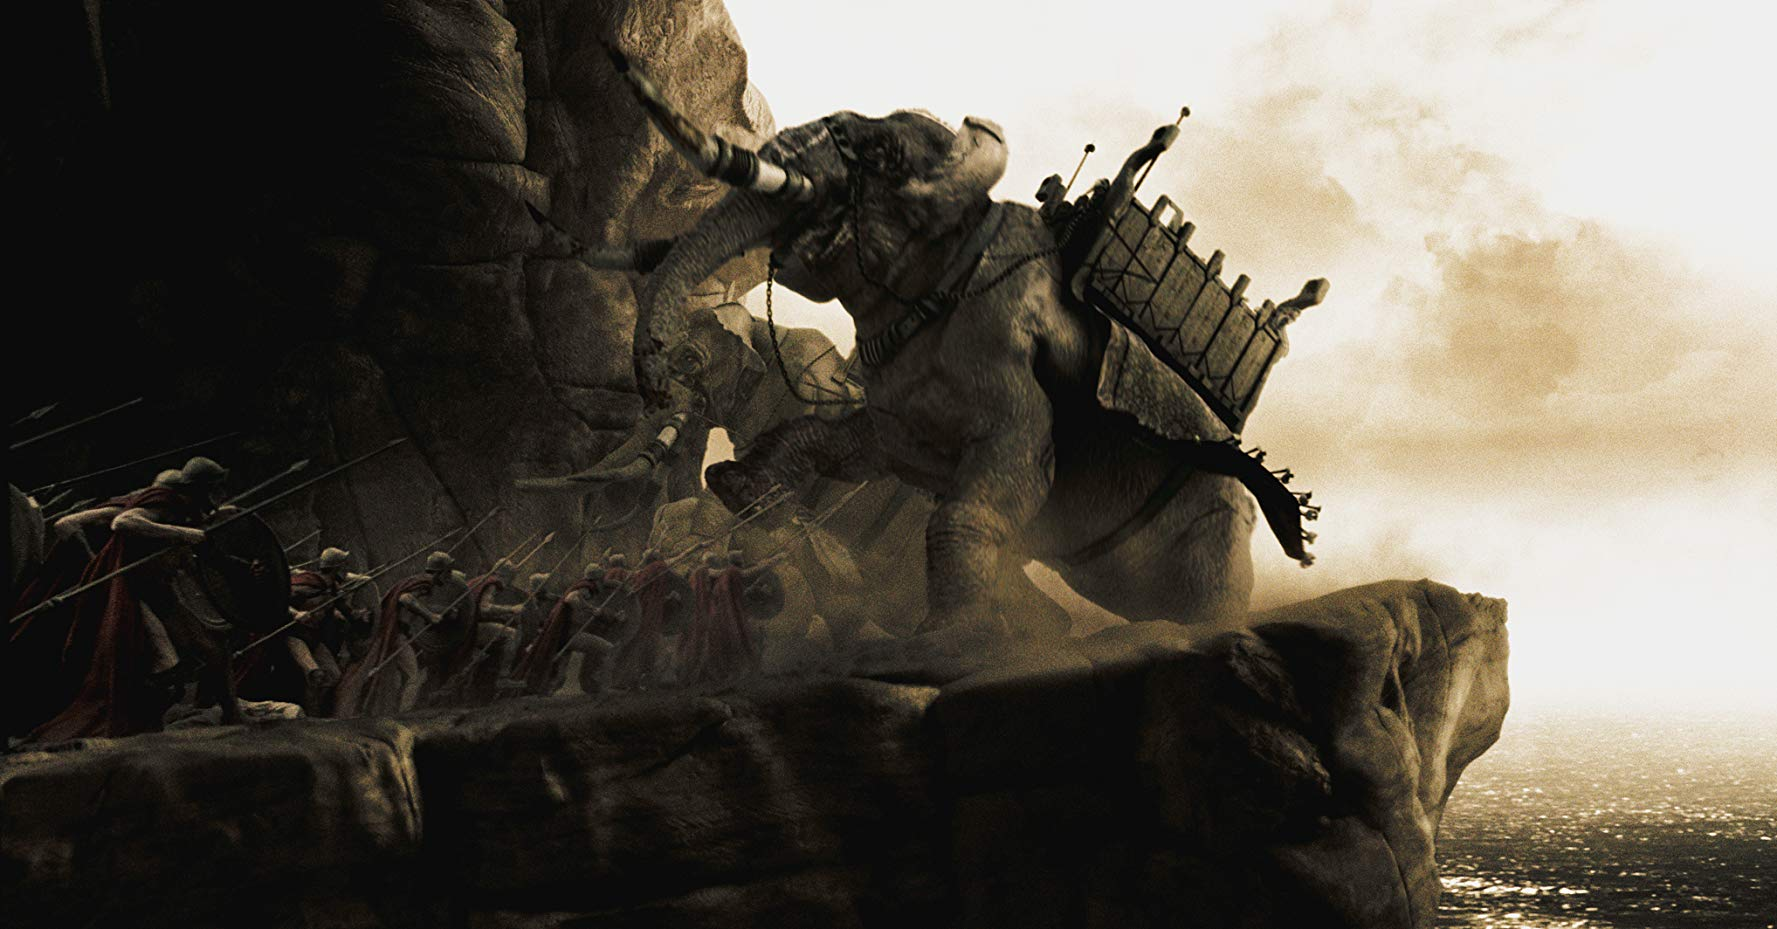 Battle elephants in 300 (2007)